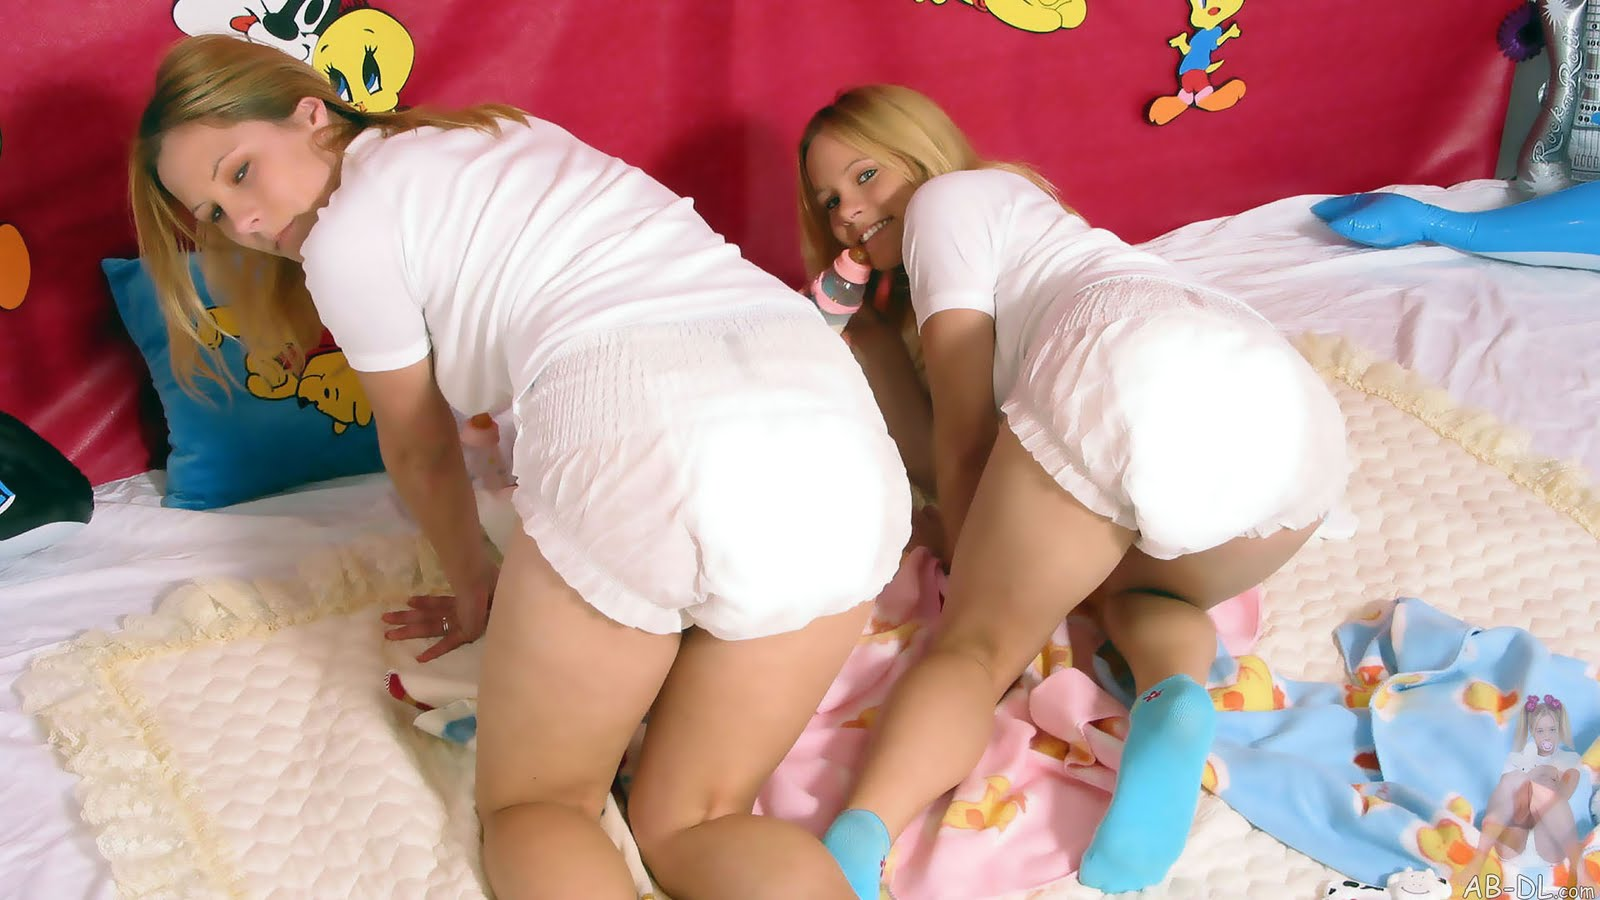 sexy-diaper-girls-porn-hot-sexy-teens-older